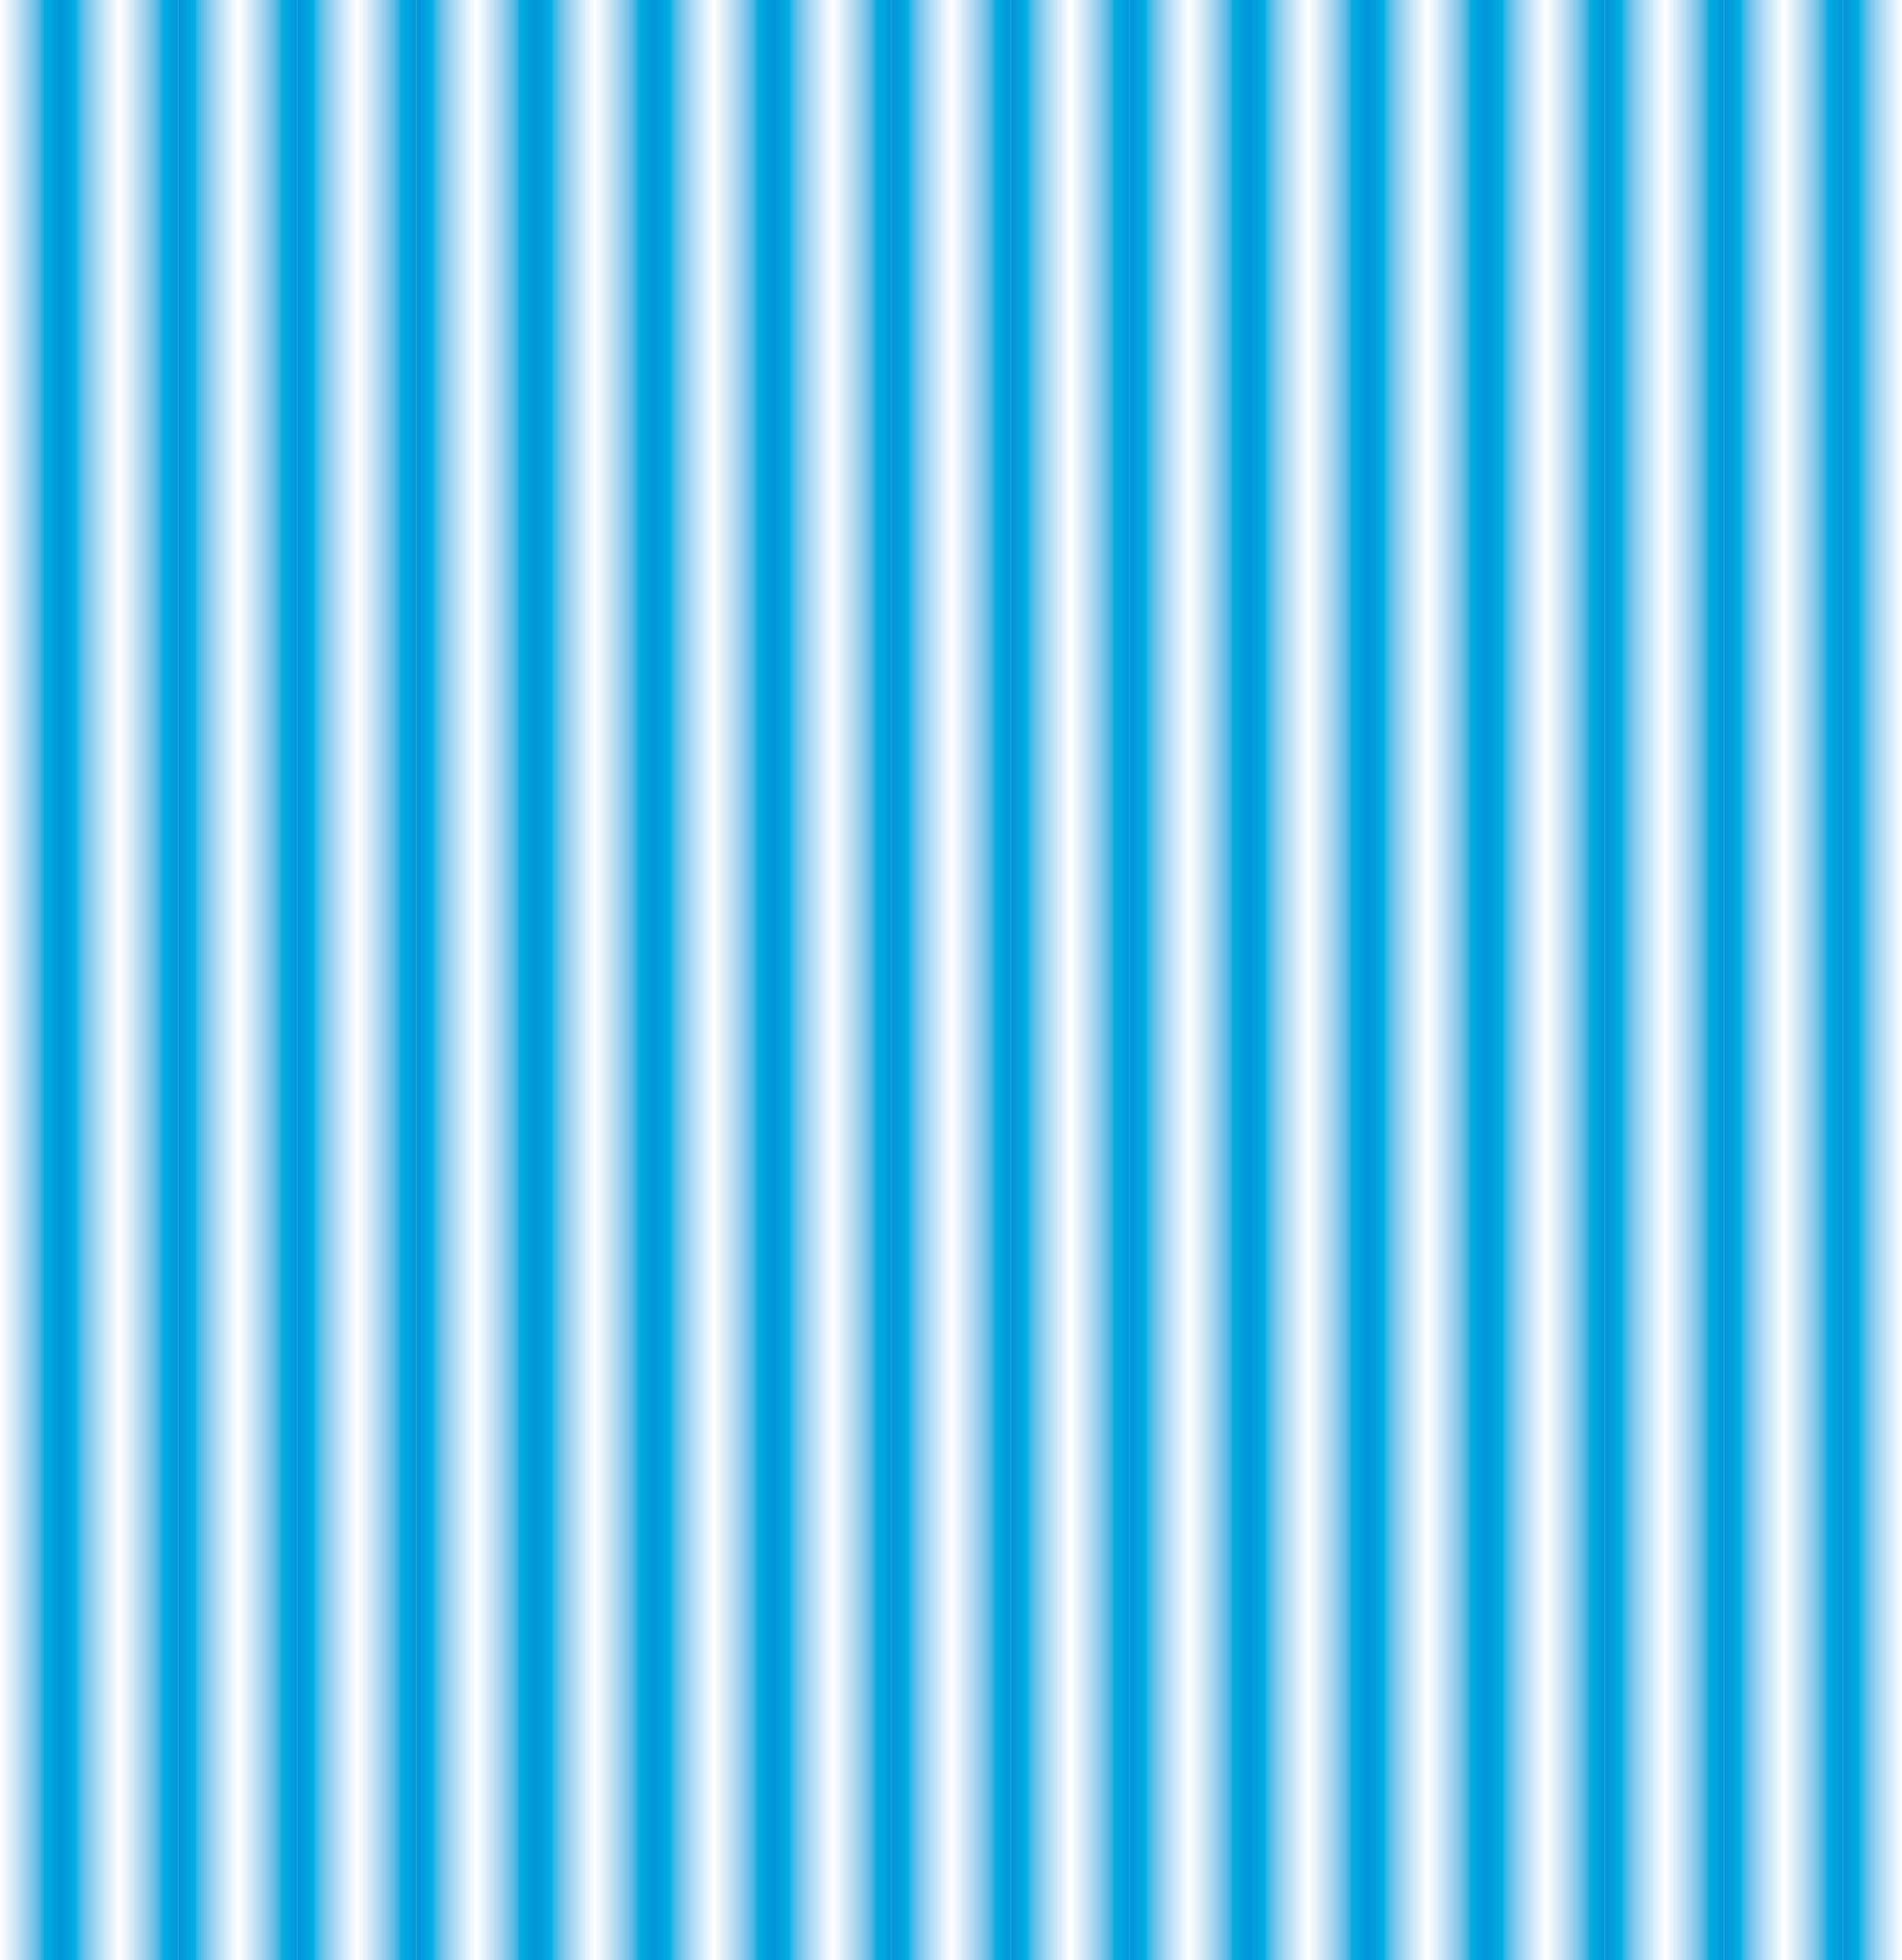 Turquoise And White Striped Wallpapers